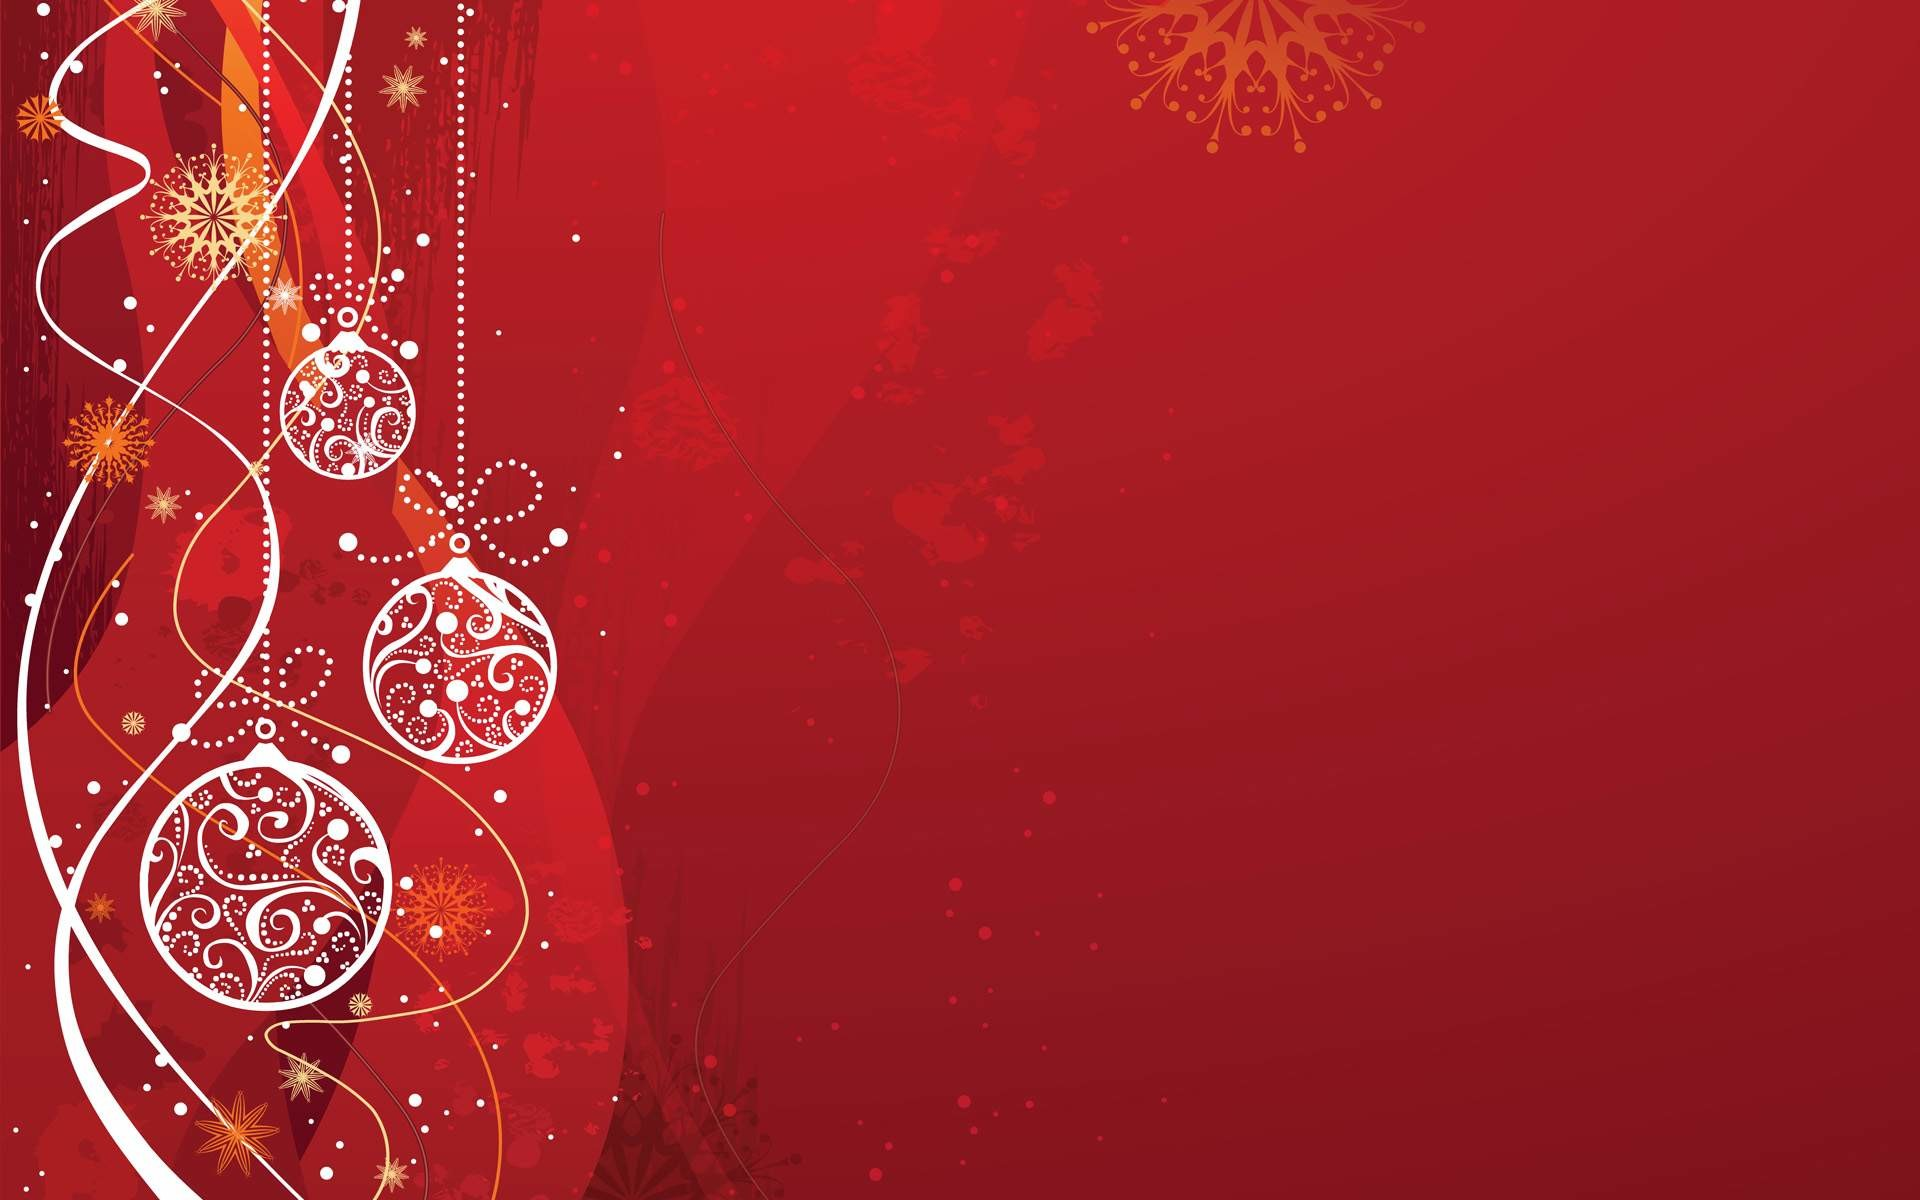 backgrounds for christmas pictures (52+ images)